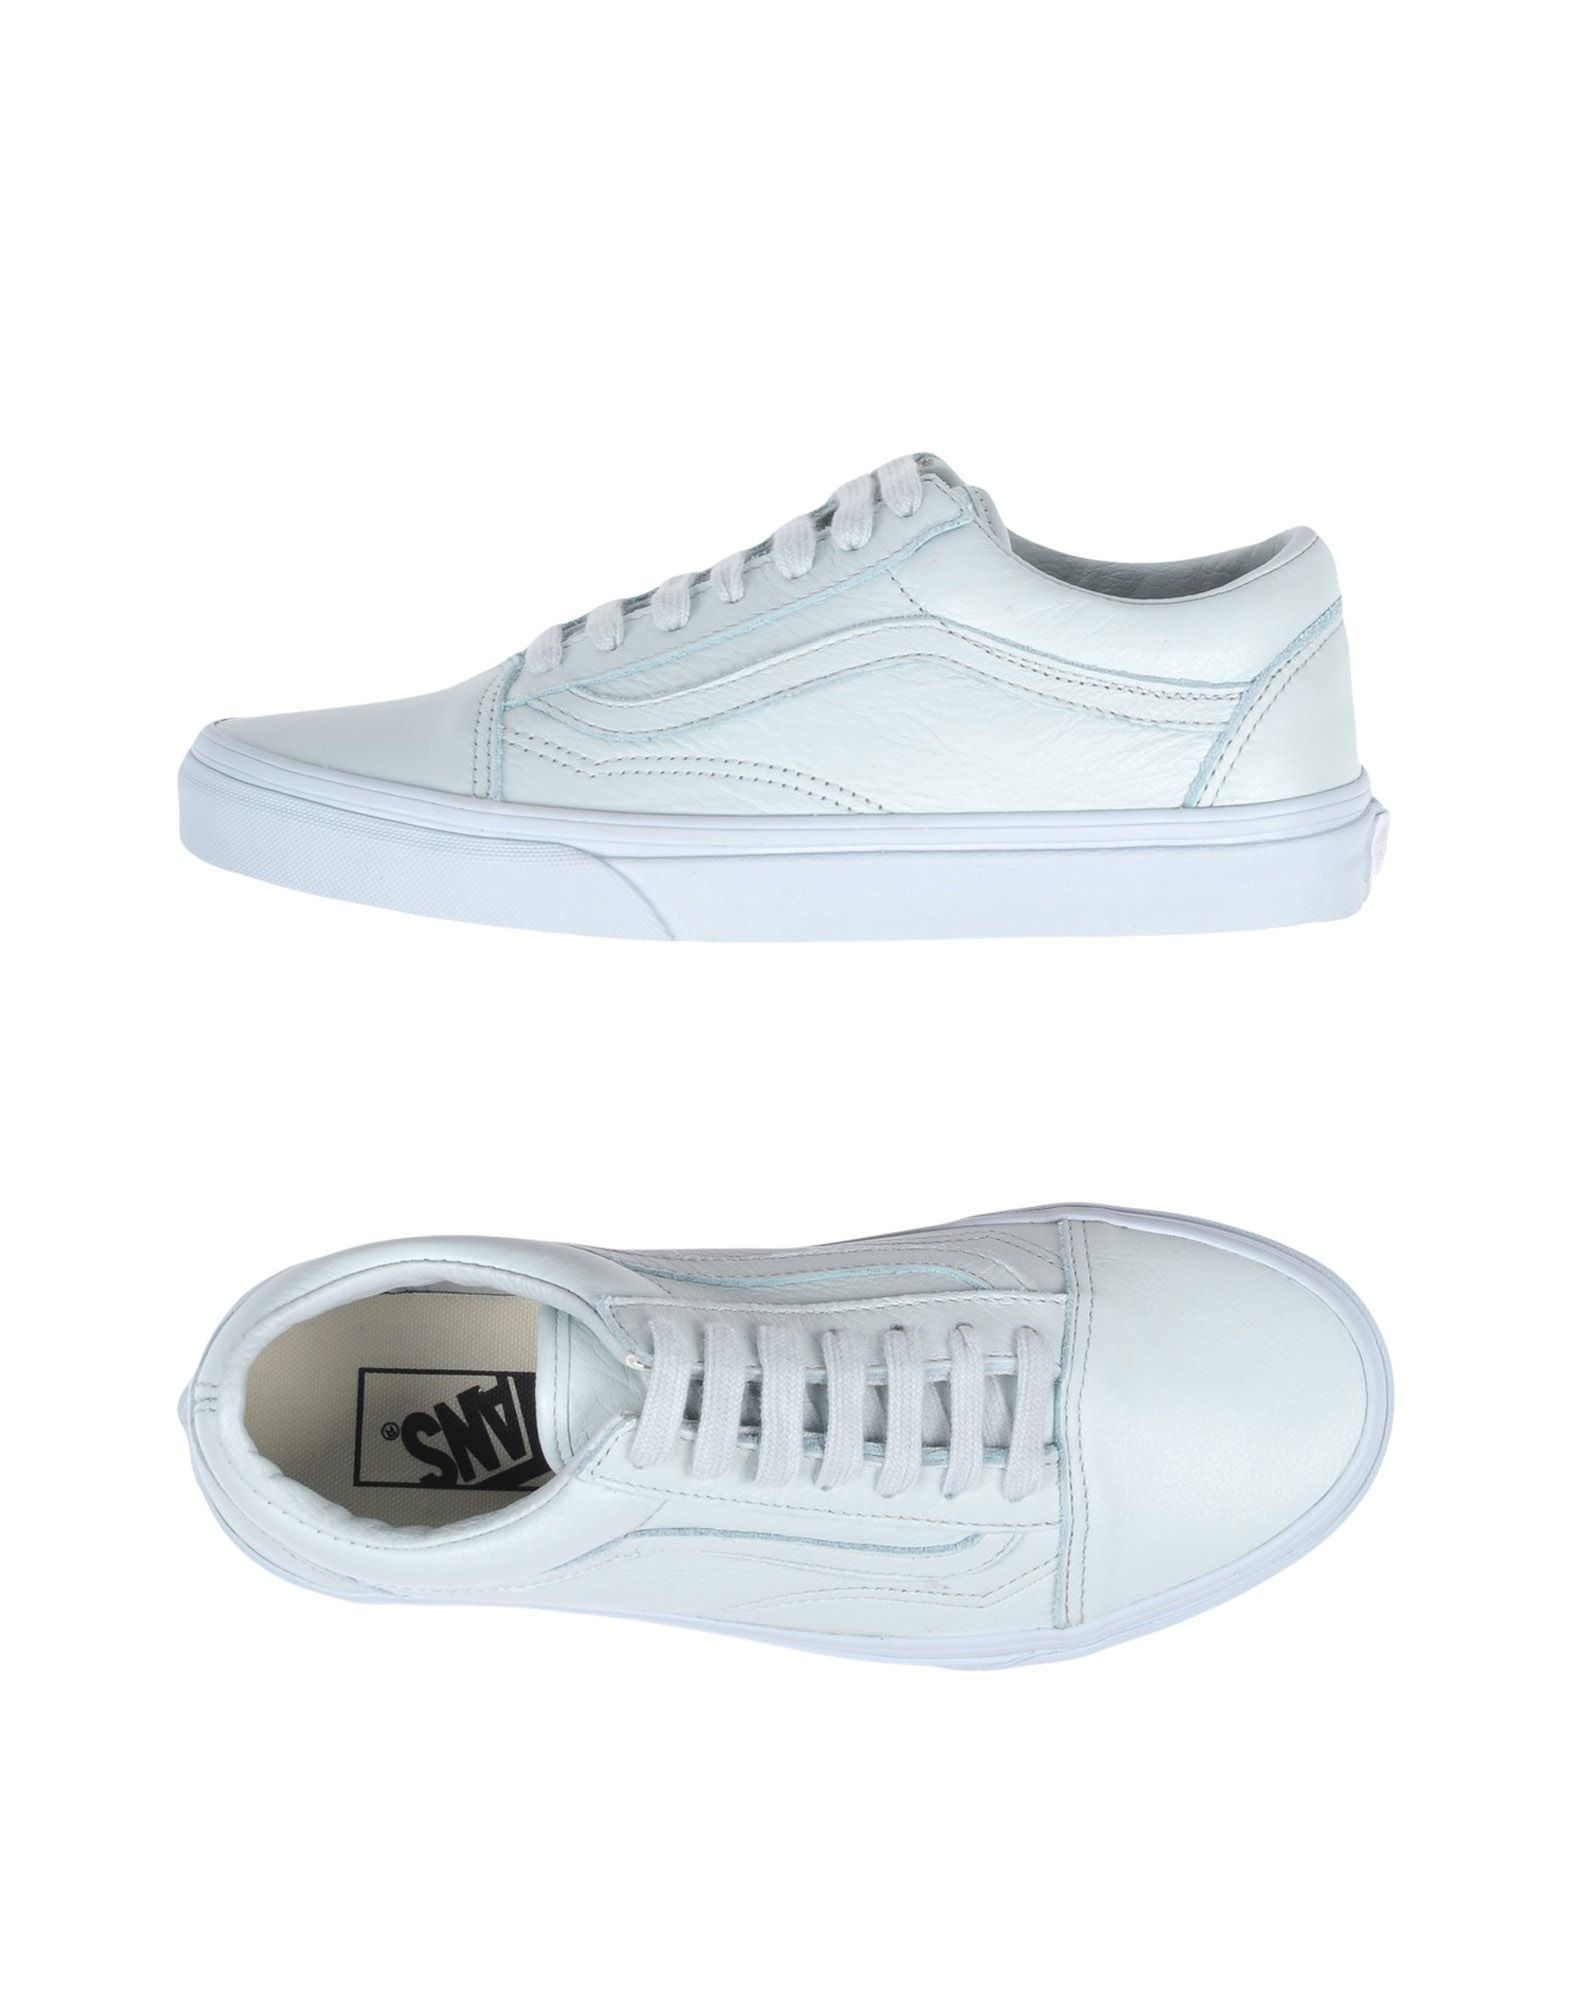 Sneakers Vans Ua Old Skool - Femme - Sneakers Vans sur